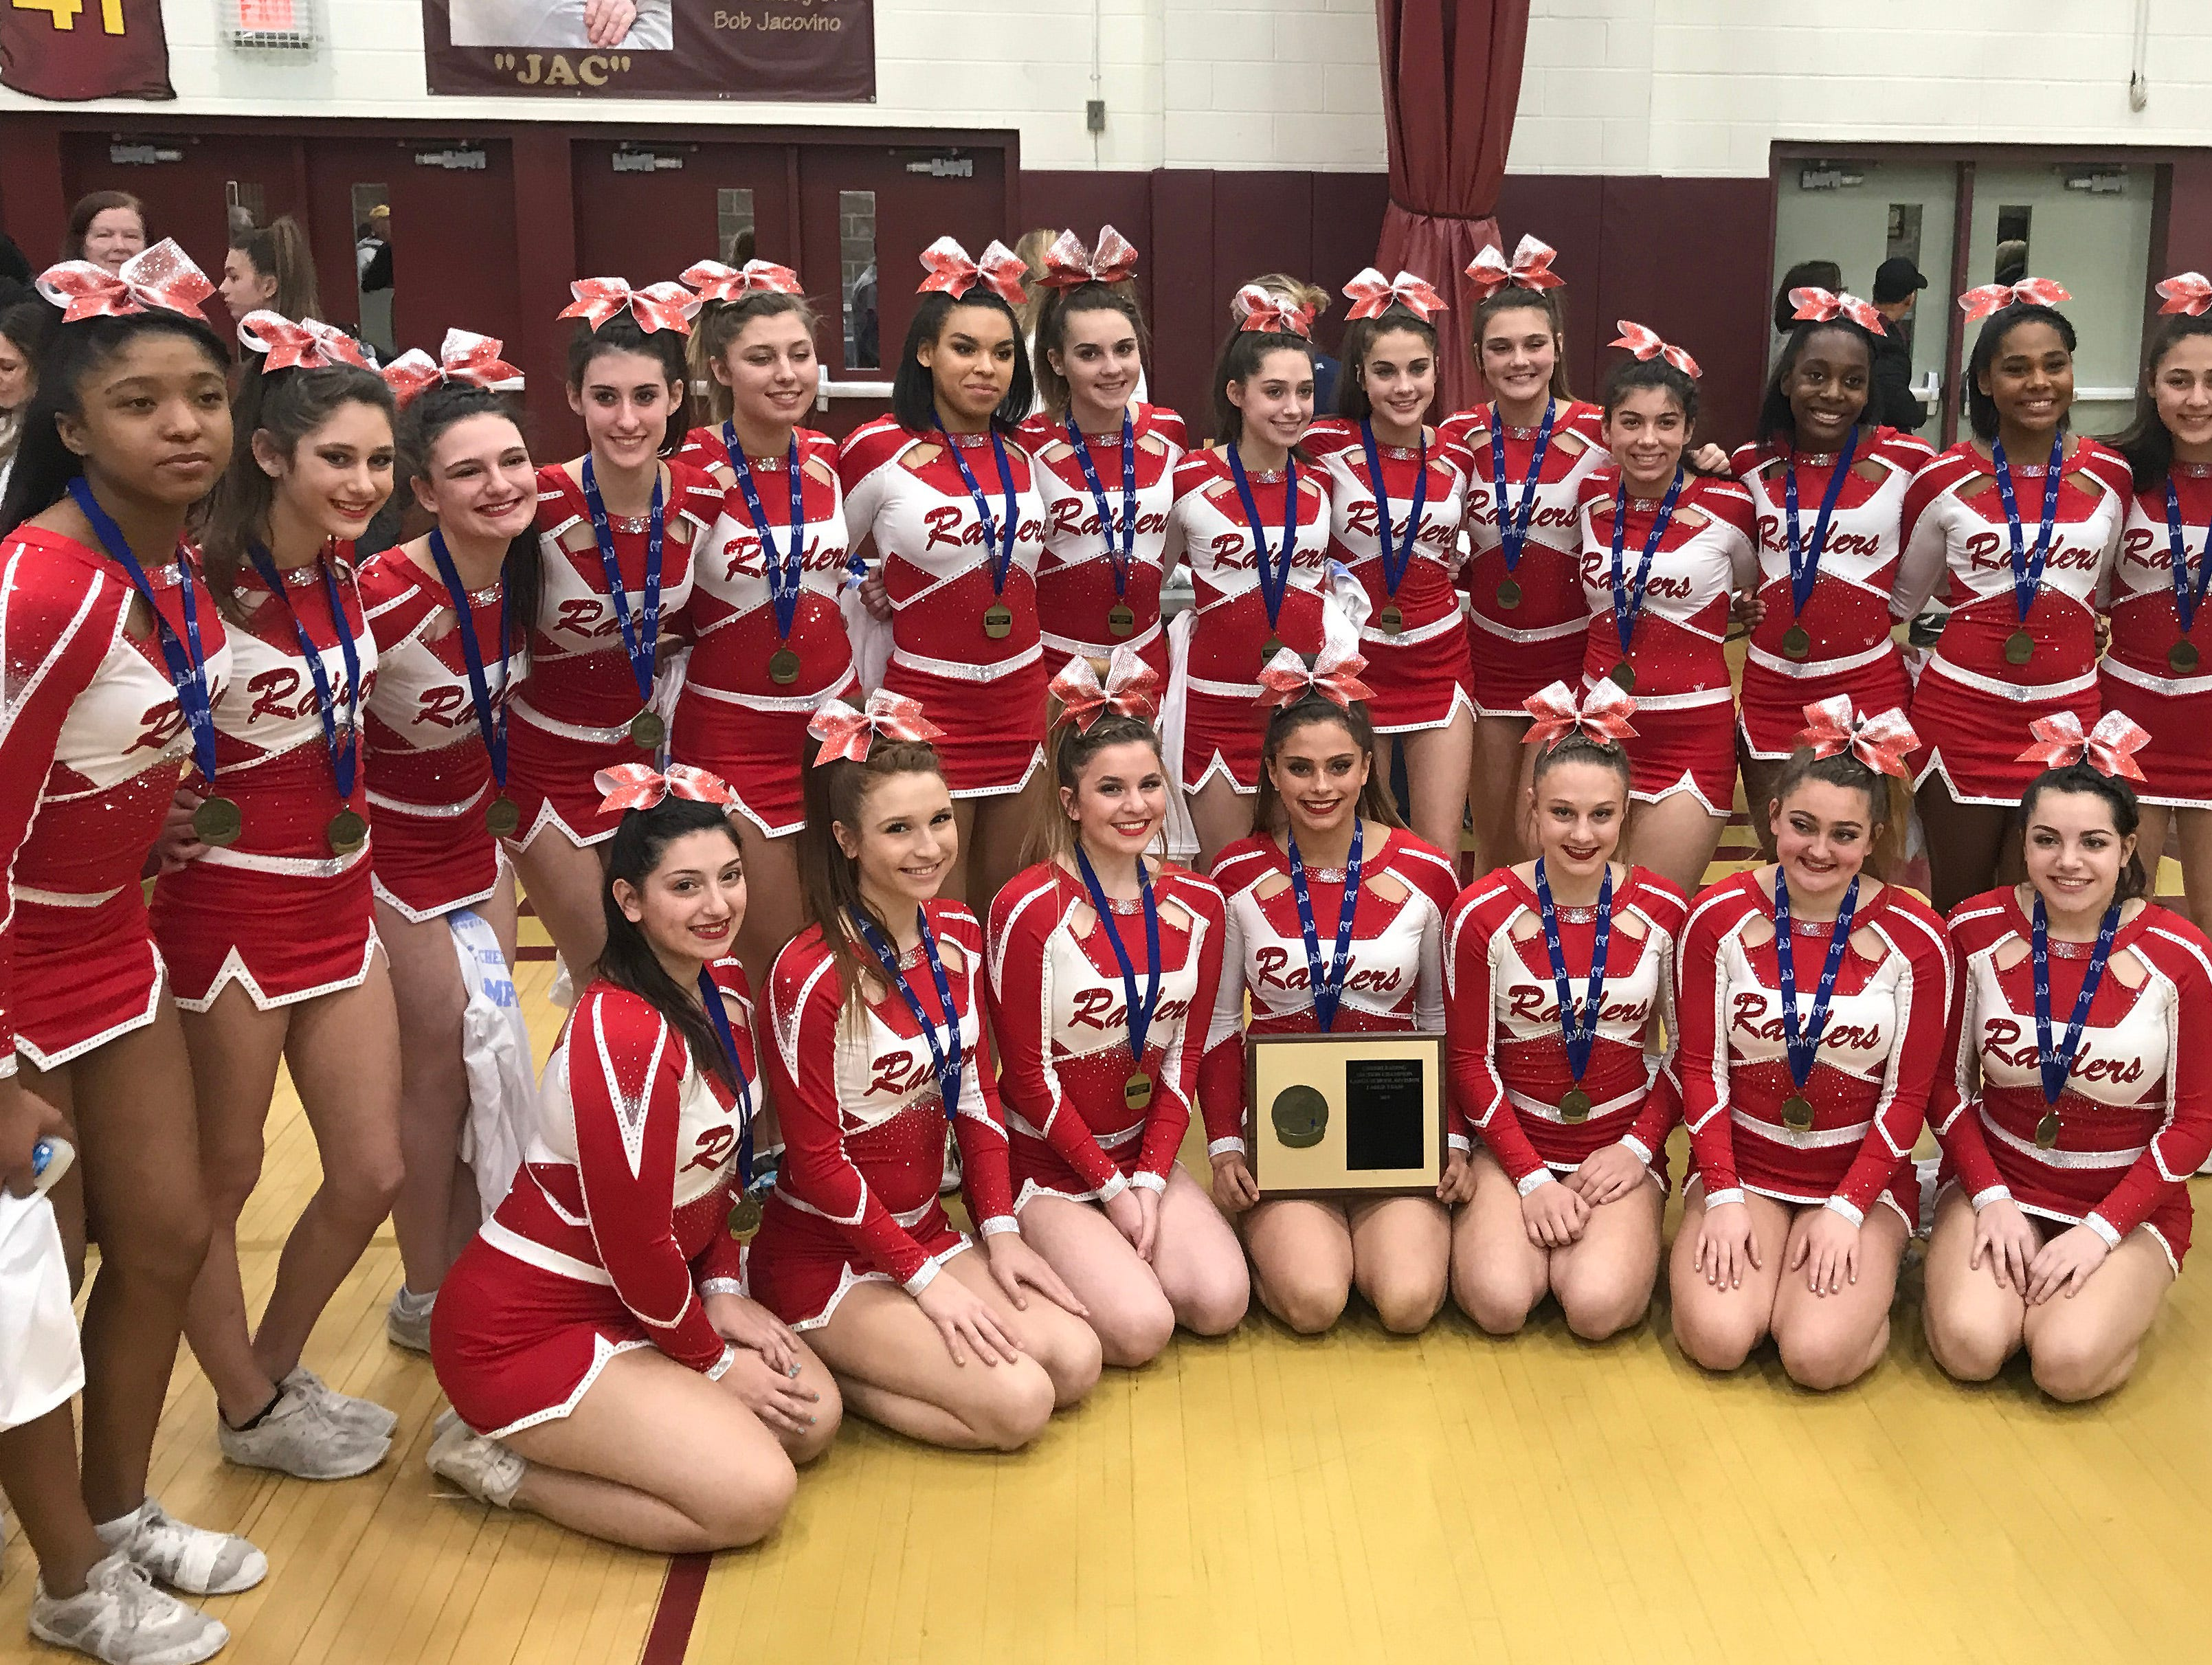 North Rockland cheerleaders pose with their championship plaque after they came in first place in their division during the Section 1 cheerleading championships at Arlington High School in Freedom Plains Feb. 16, 2019.